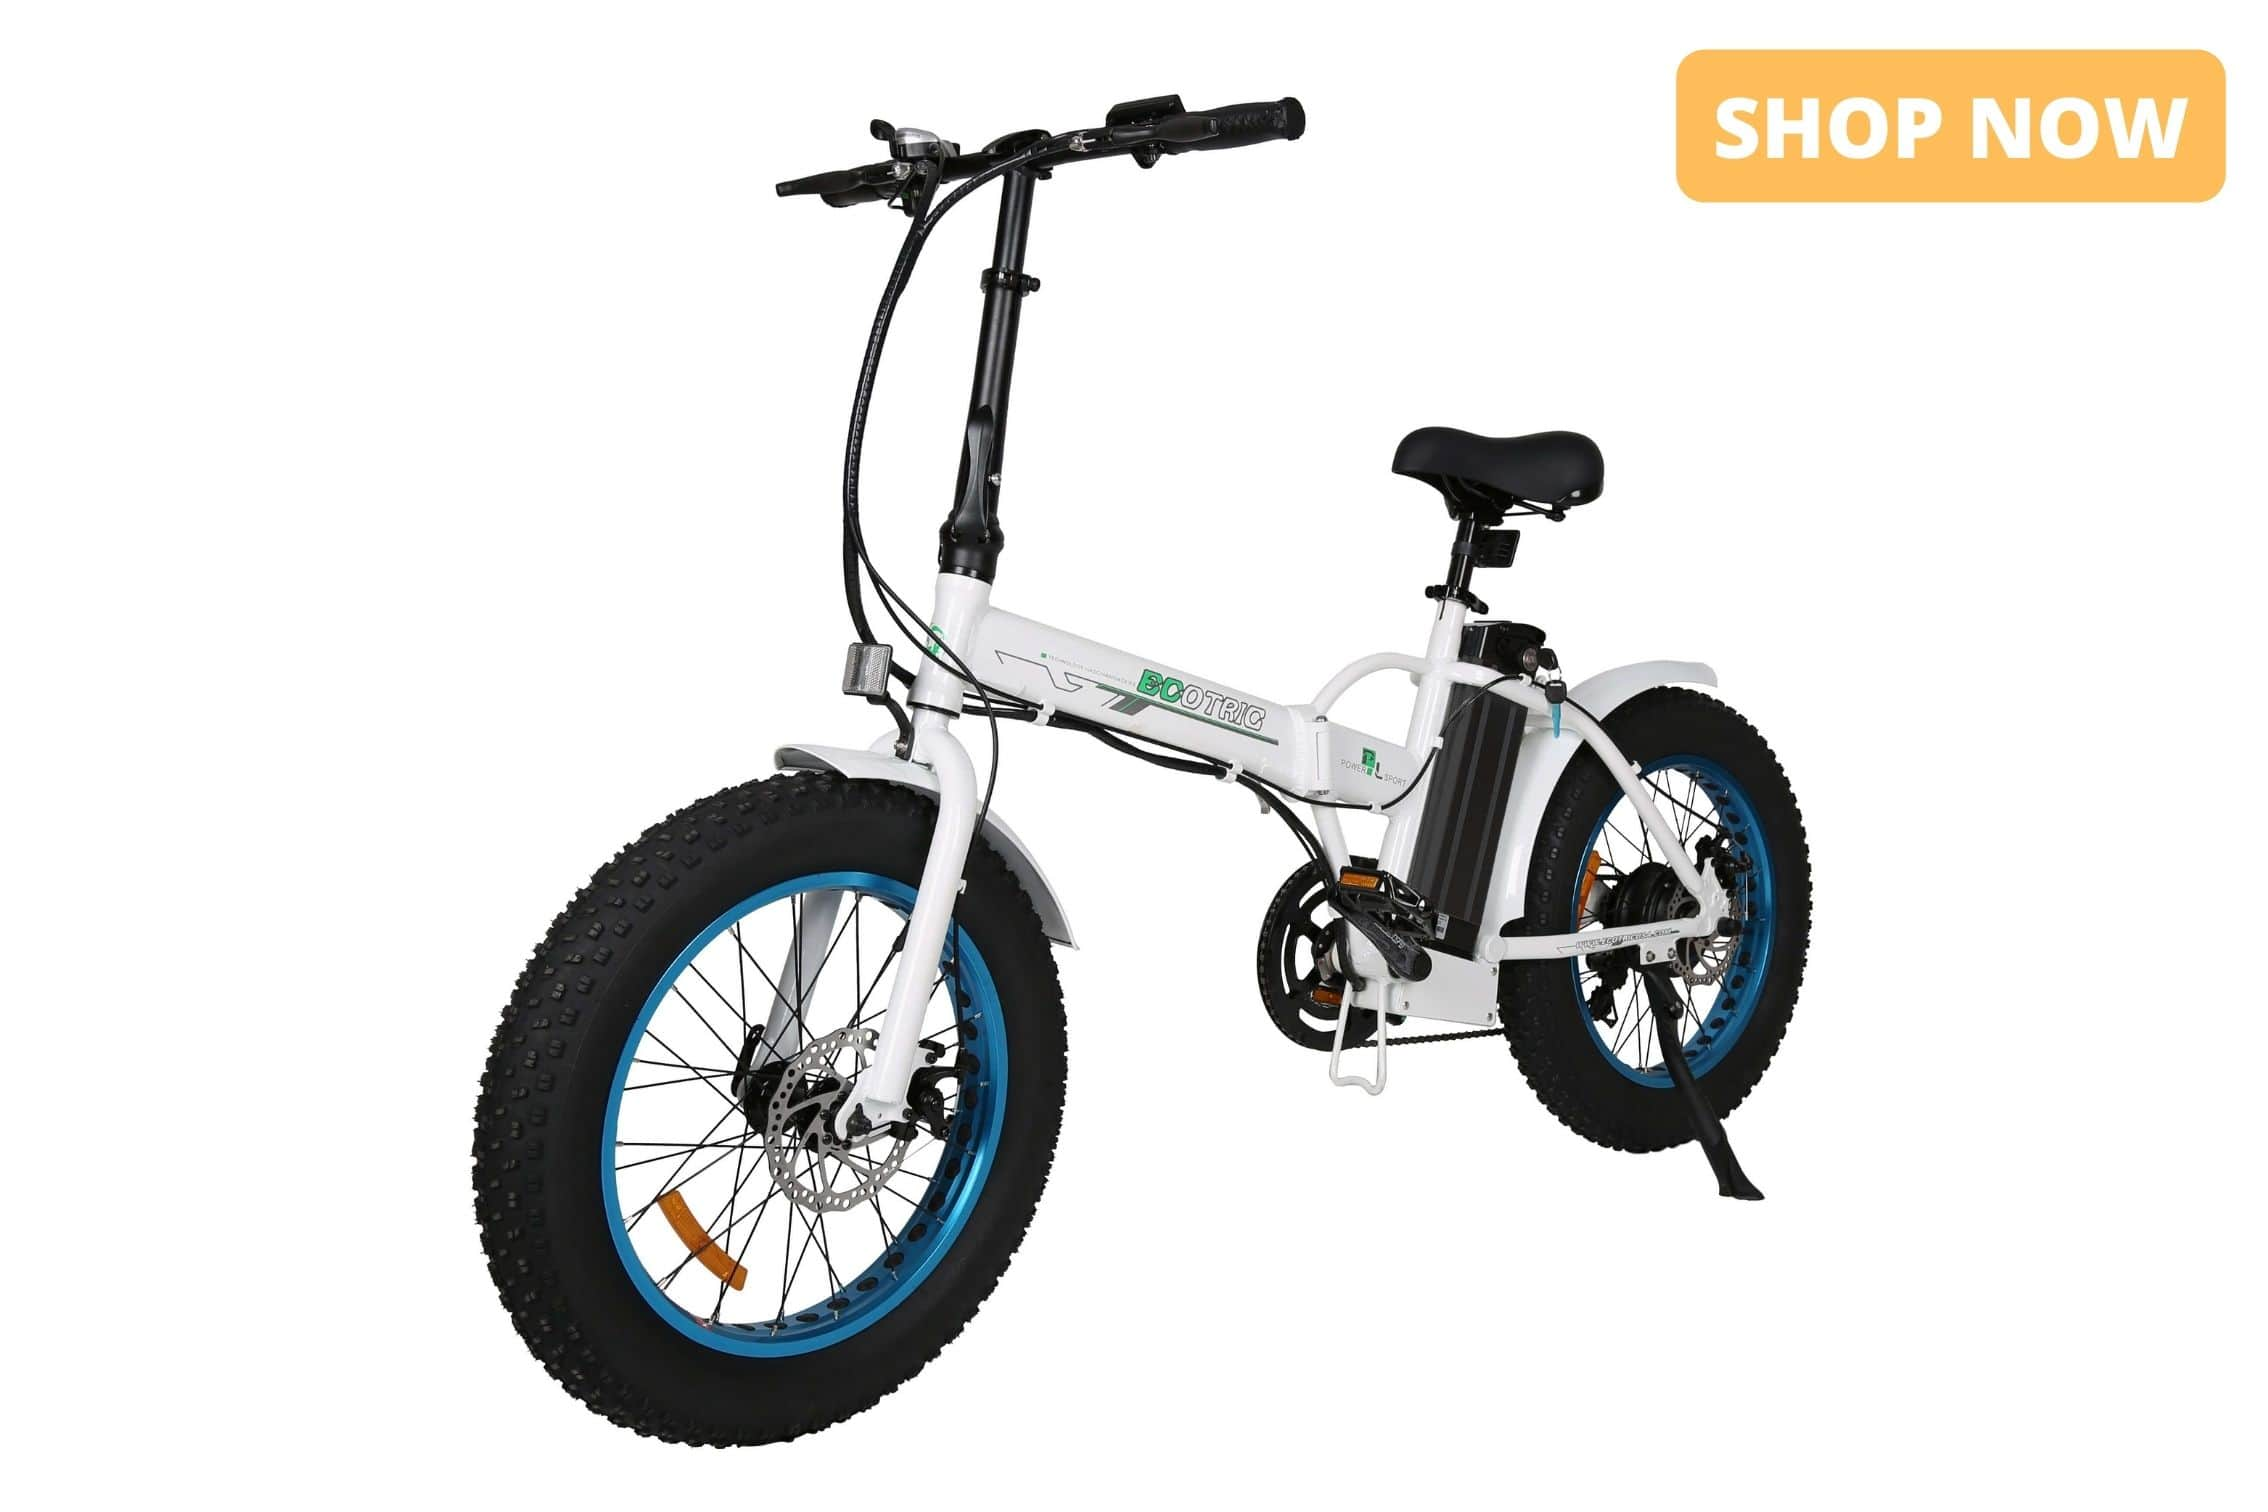 Ecotric Fat Tire Foldable Electric Bike Product Page